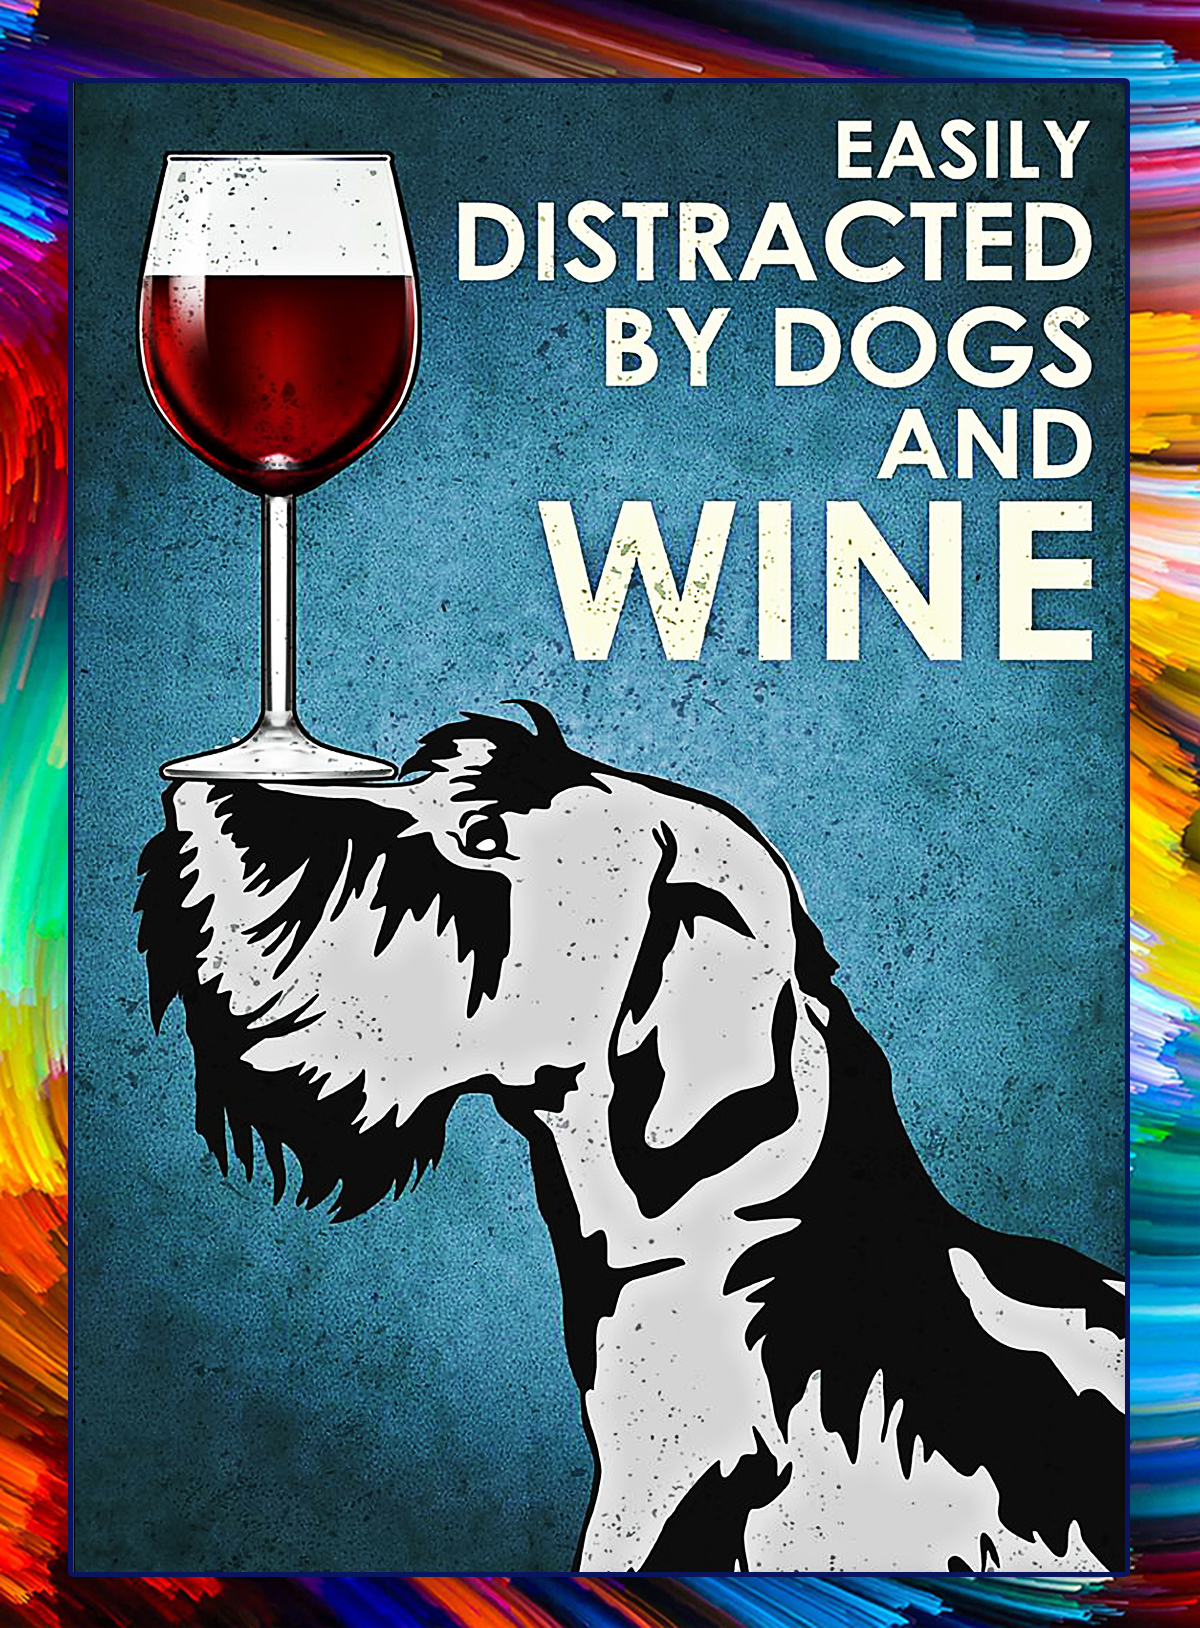 Miniature schnauzer Easily distracted by dogs and wine poster - A4